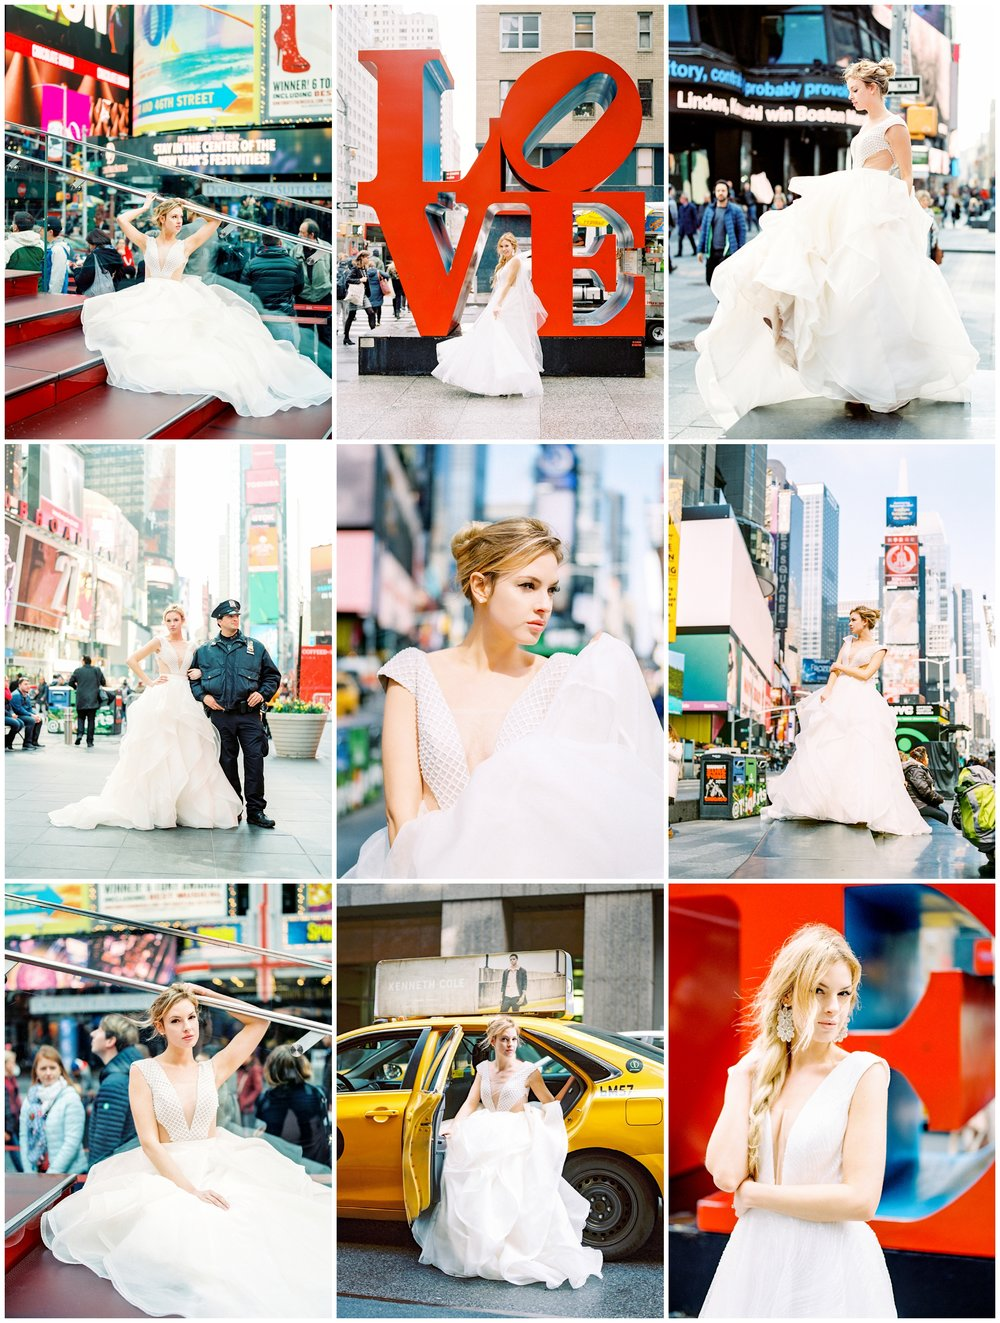 photoshoot for Olia Zavozina in Times Square